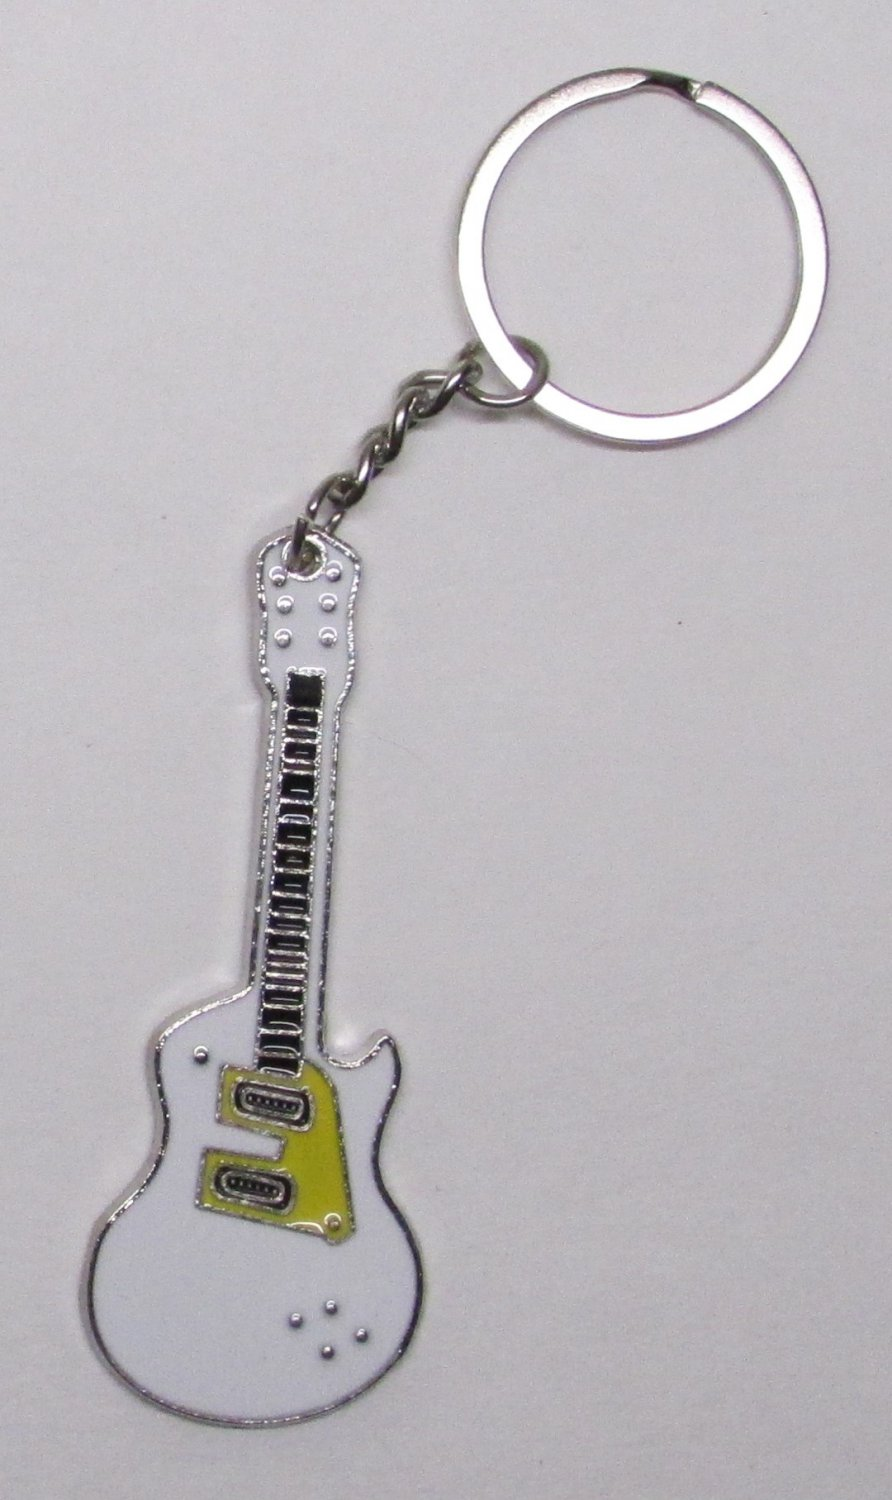 Electric GUITAR White Metal Alloy KEY CHAIN Ring Keychain NEW